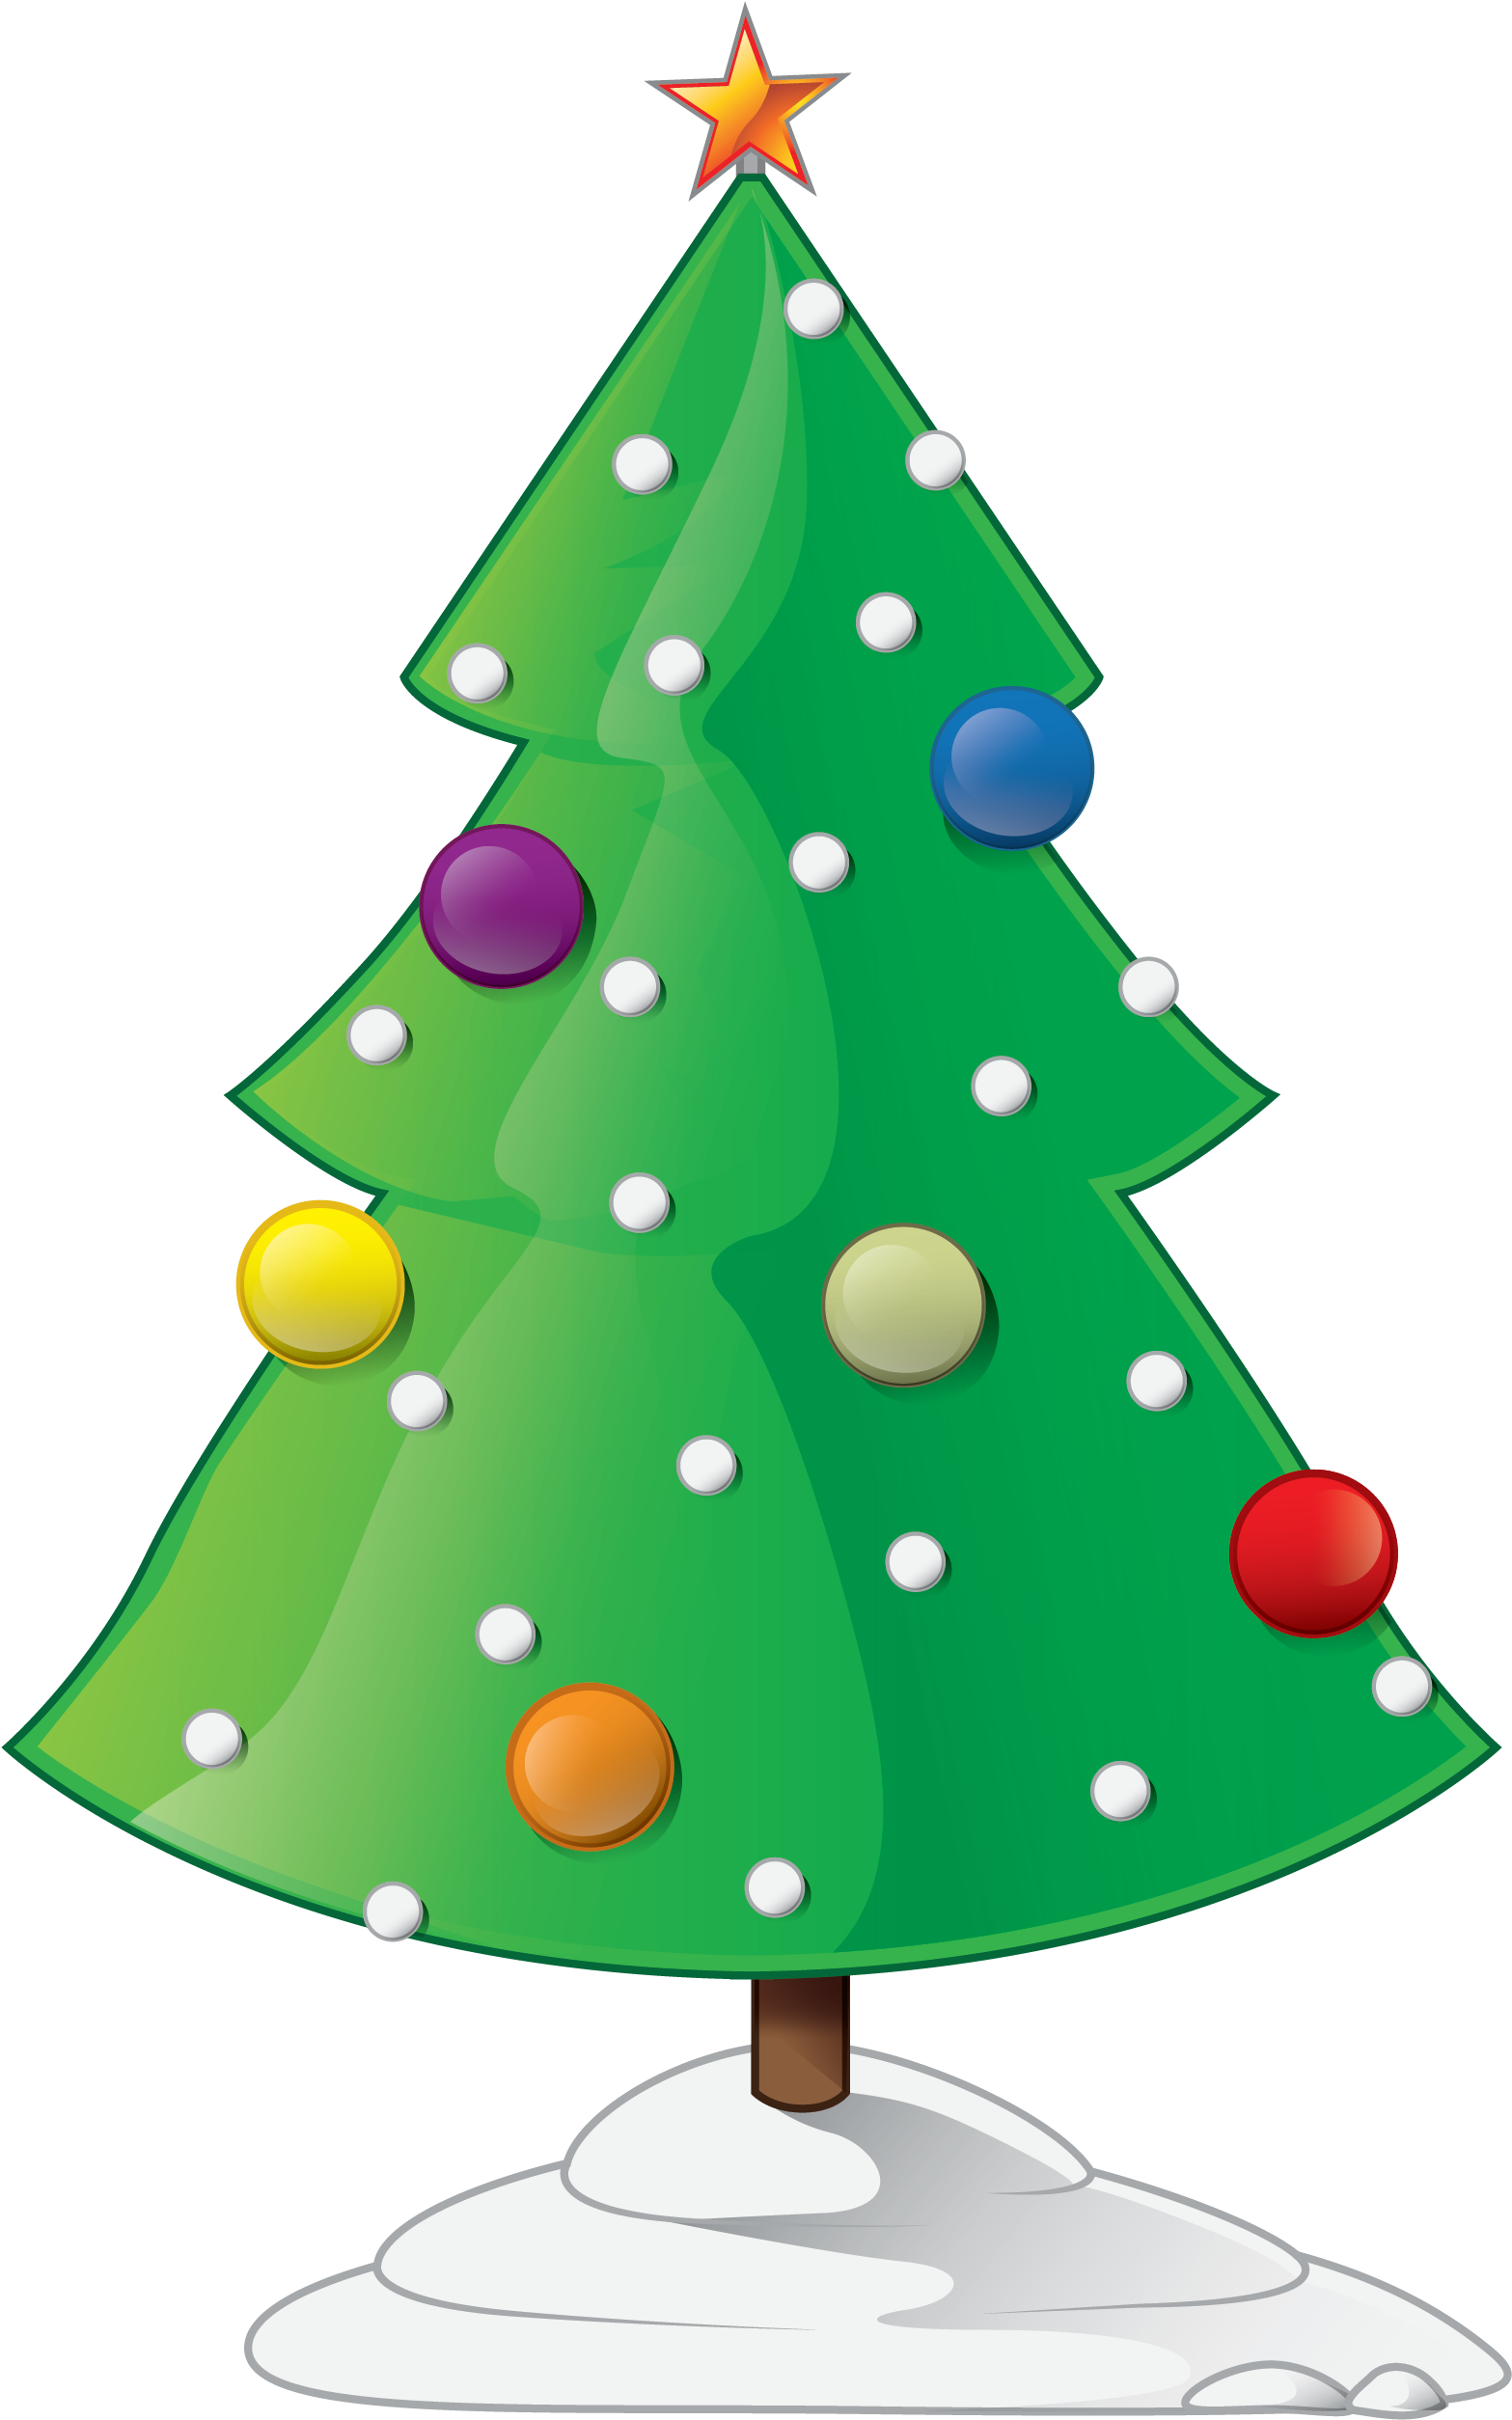 Showing Post Media For Cartoon Christmas Ornament Christmas Tree Animation Png Transparent Cartoon Jing Fm Download 2,504 cartoon christmas tree free vectors. christmas tree animation png